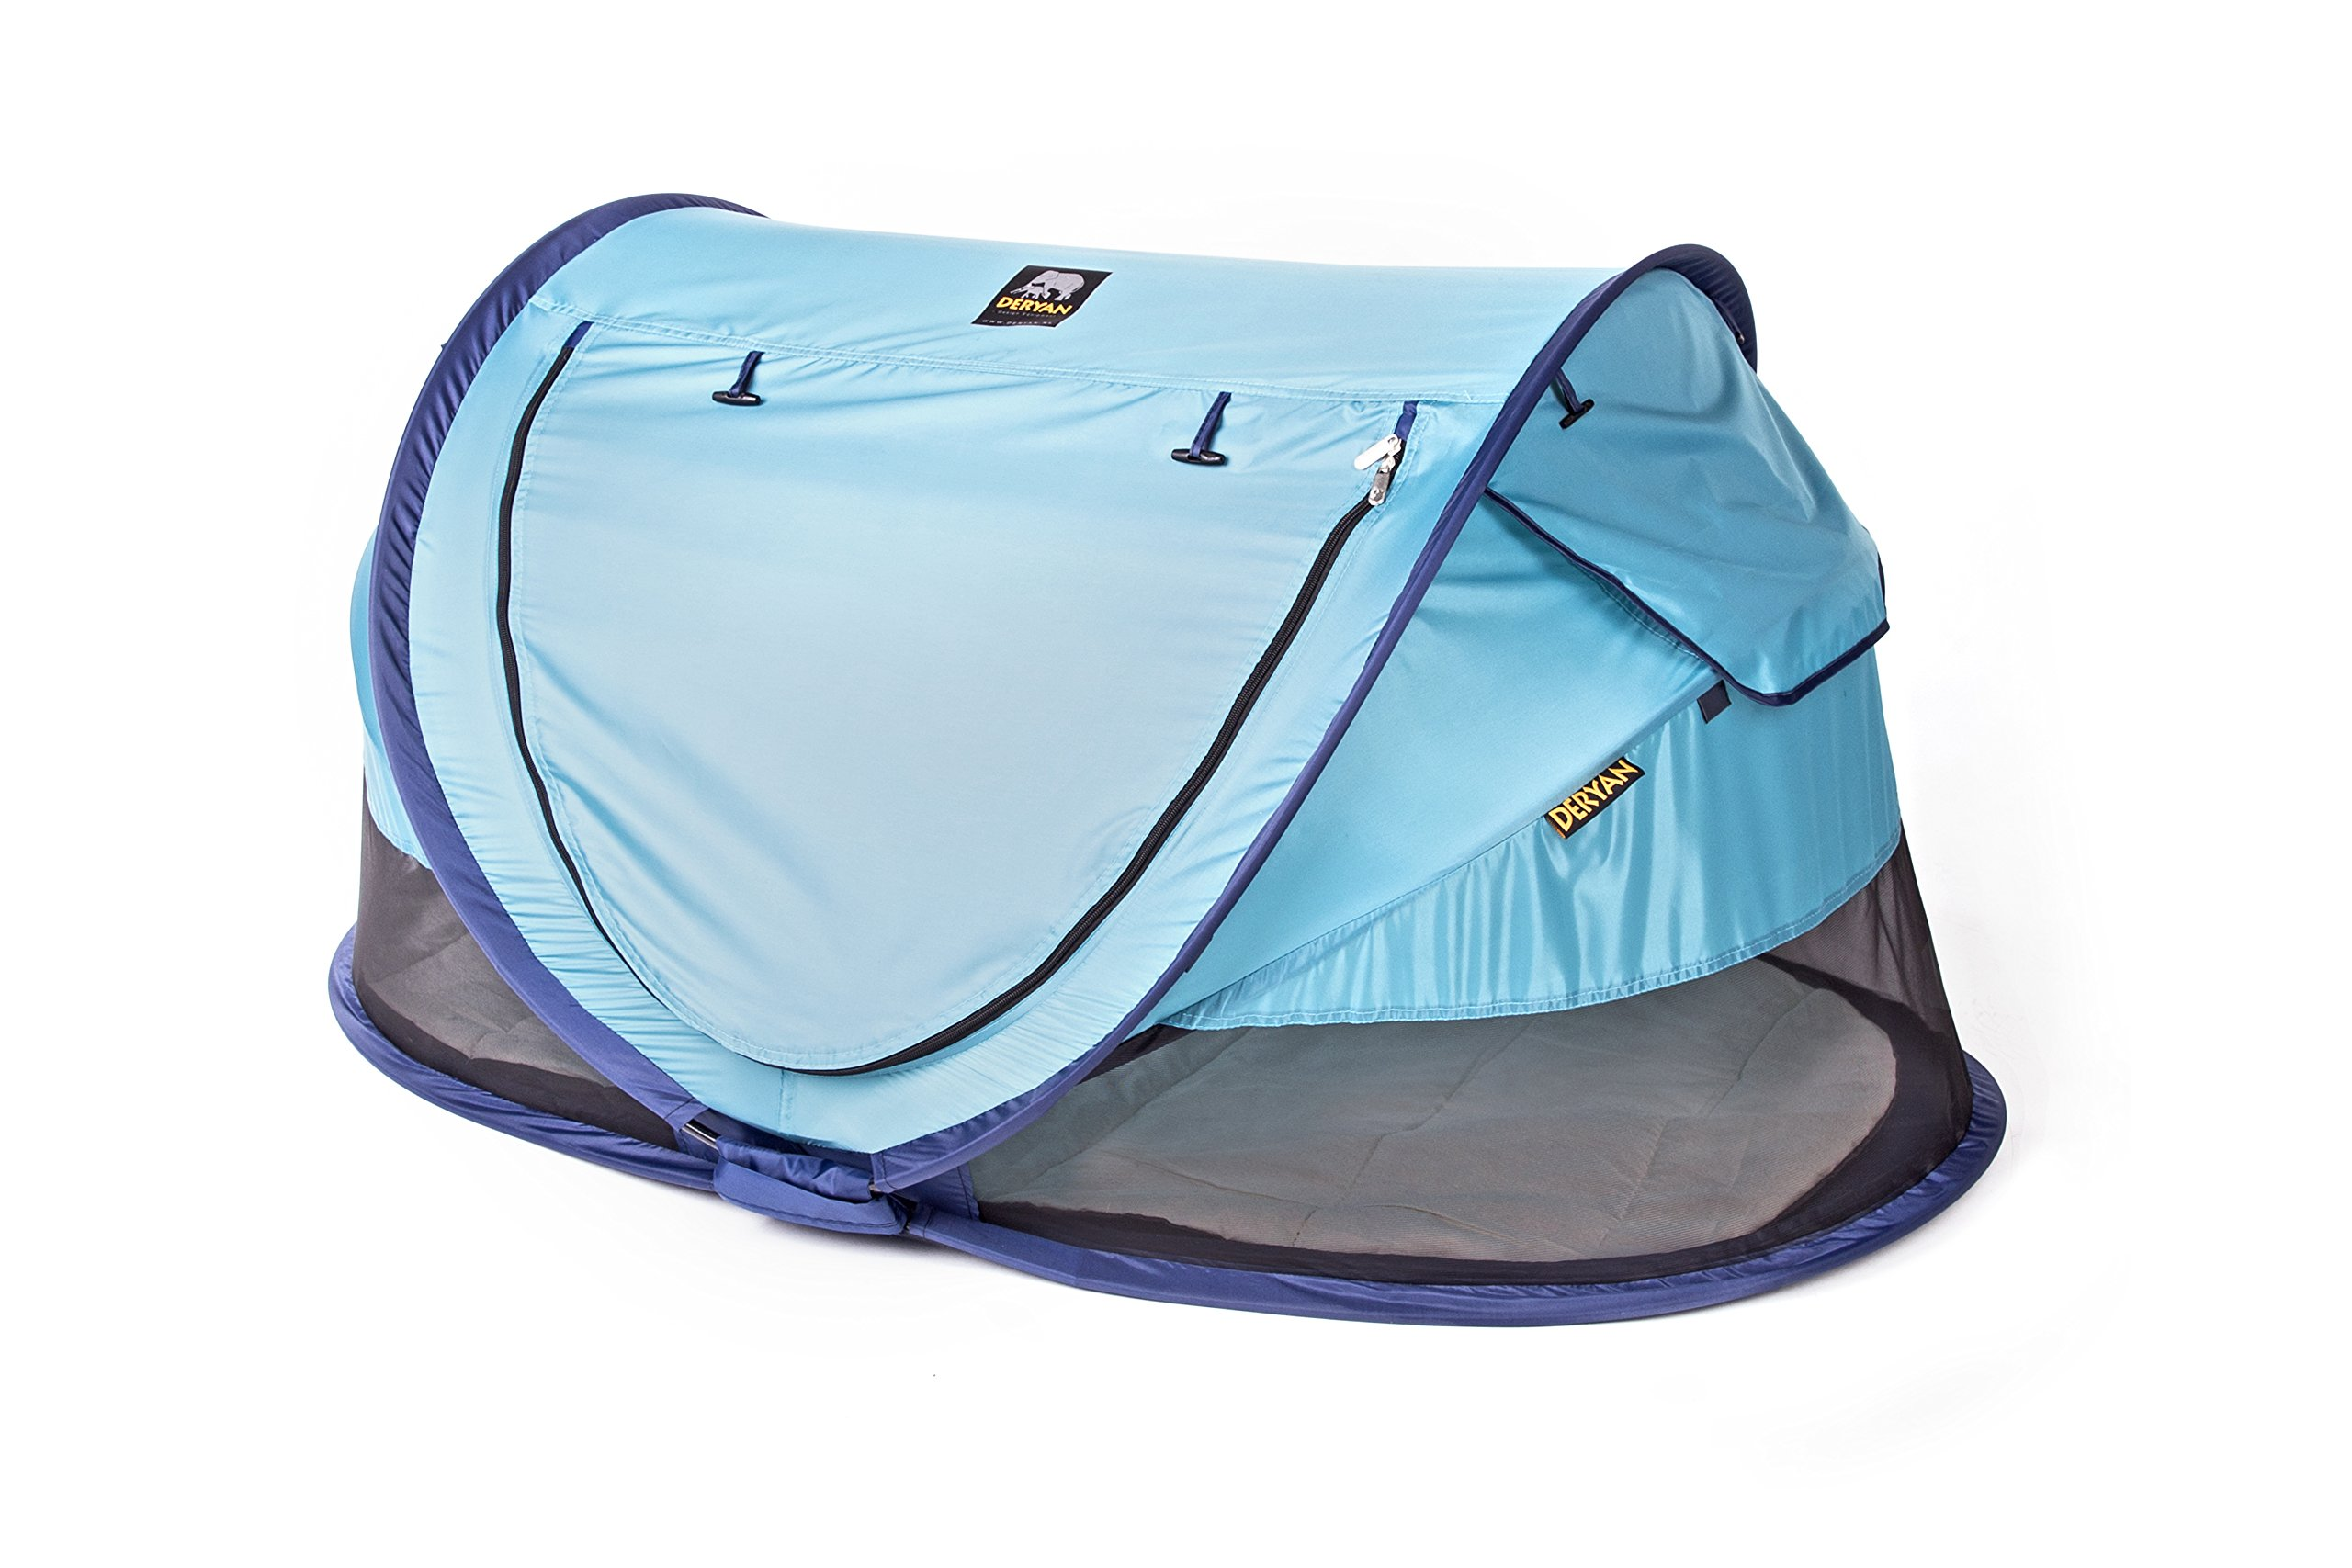 Travel Cot Peuter Luxe (Ocean) Deryan 50% UV Protection and flame retardant fabric Setup in 2 seconds and a anti-musquito net  3